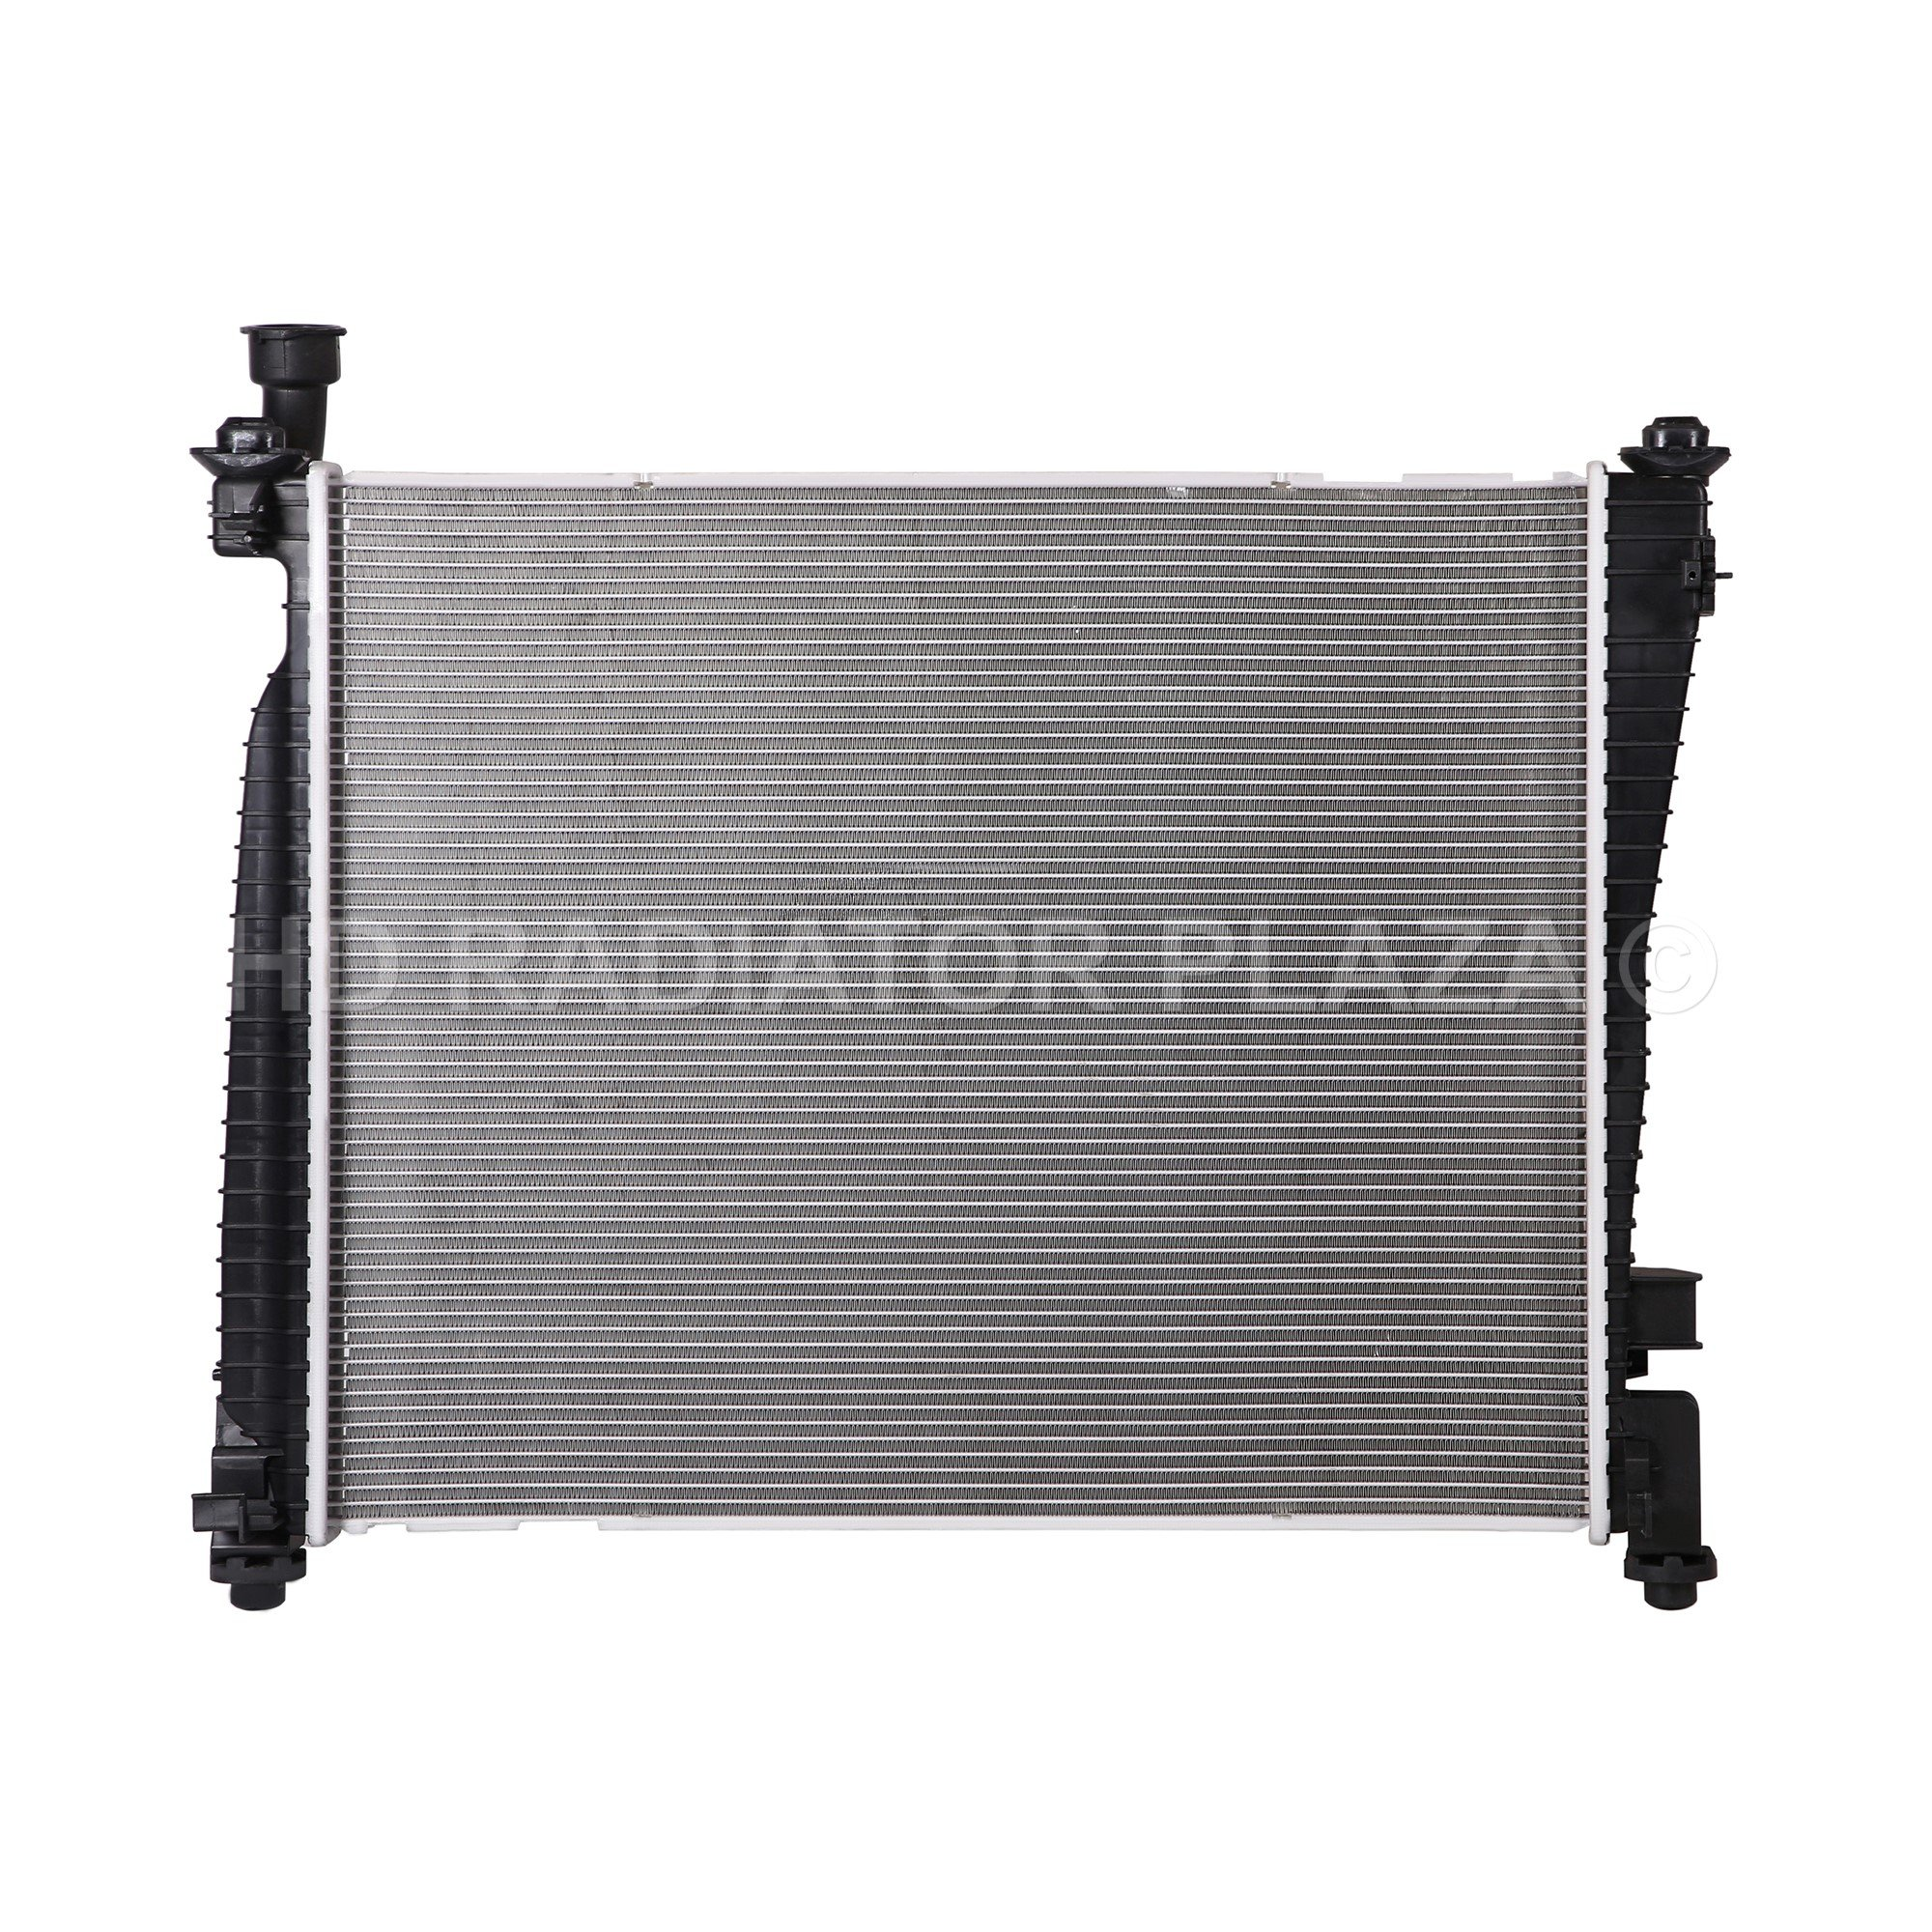 Radiator for 11-19 Grand Cherokee / Durango